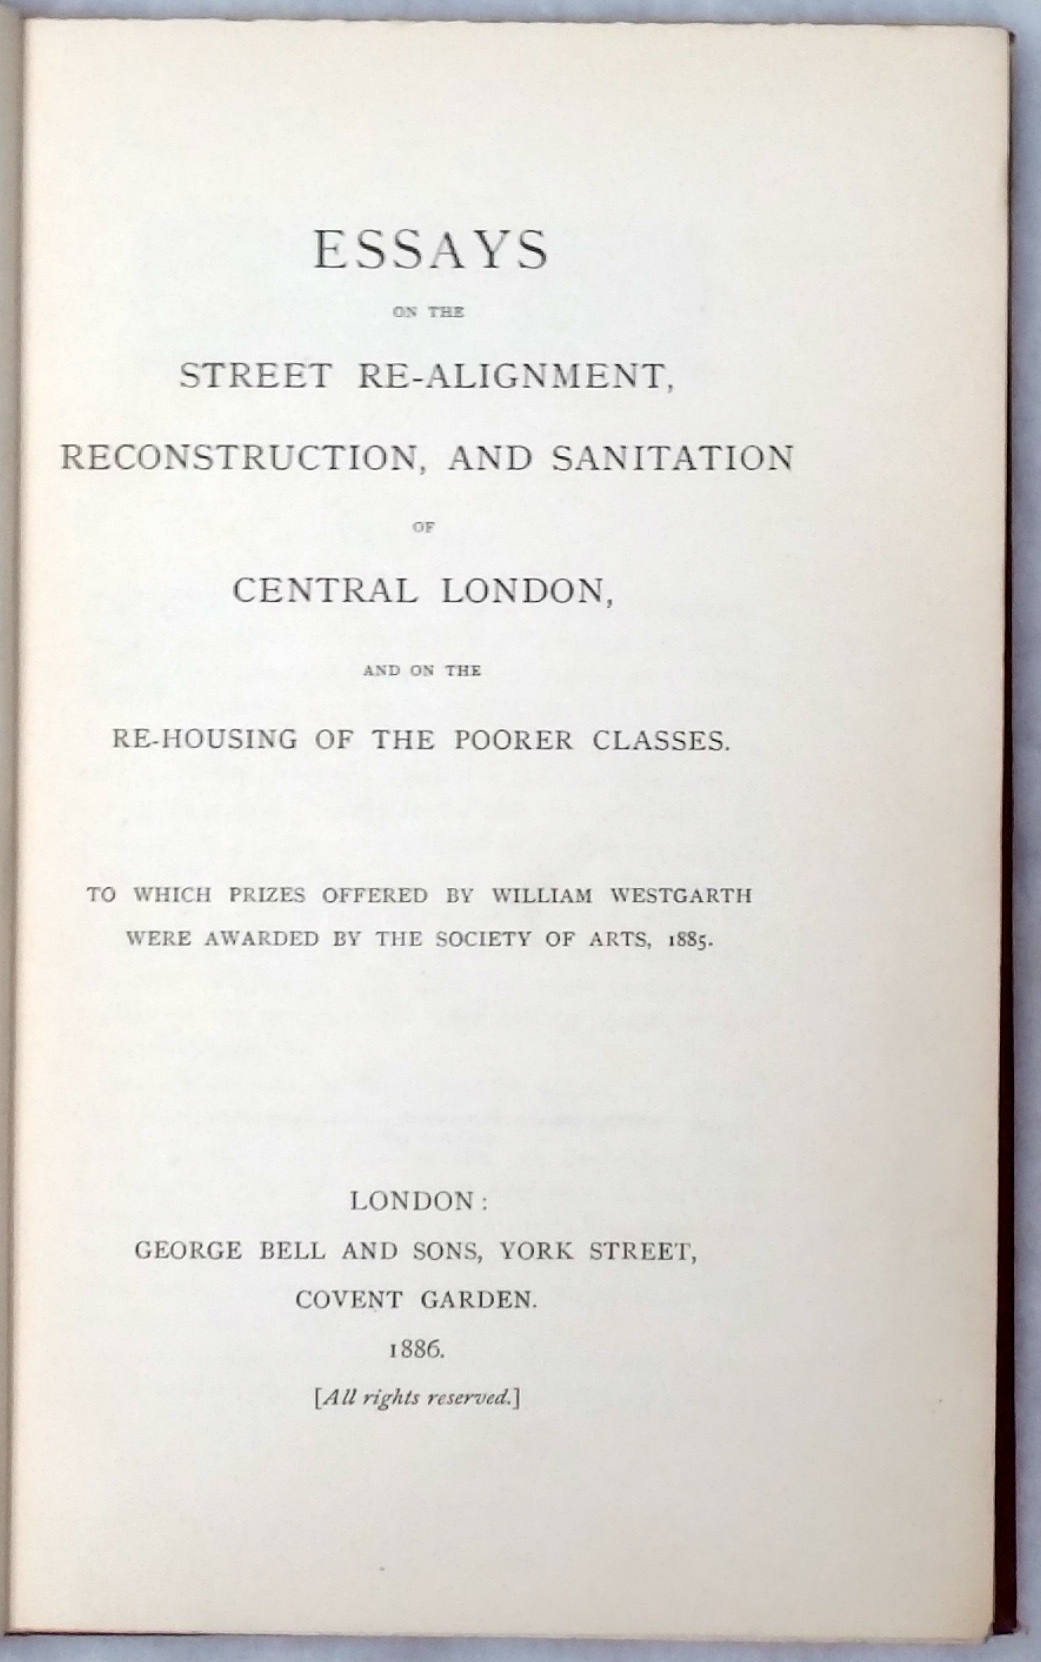 Image for Essays on the Street Re-Alignment, Reconstruction, and Sanitation of Central London and on the Re-Housing of the Poorer Classes